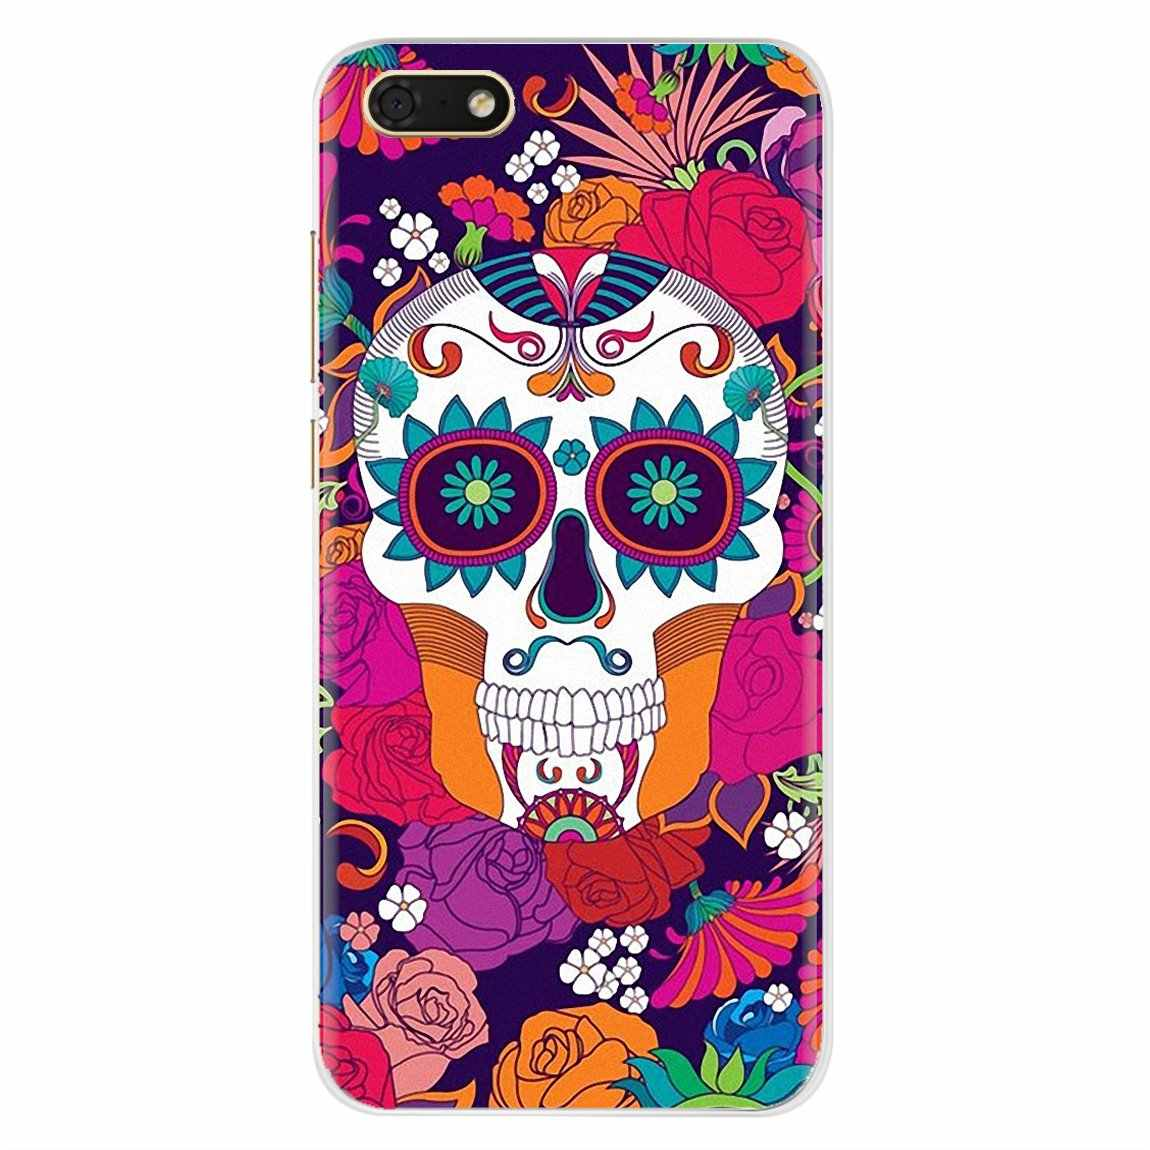 For Xiaomi Redmi 4A S2 Note 3 3S 4 4X 5 Plus 6 7 6A Pro Pocophone F1 catrina girl Flower Personalized Silicone Phone Case